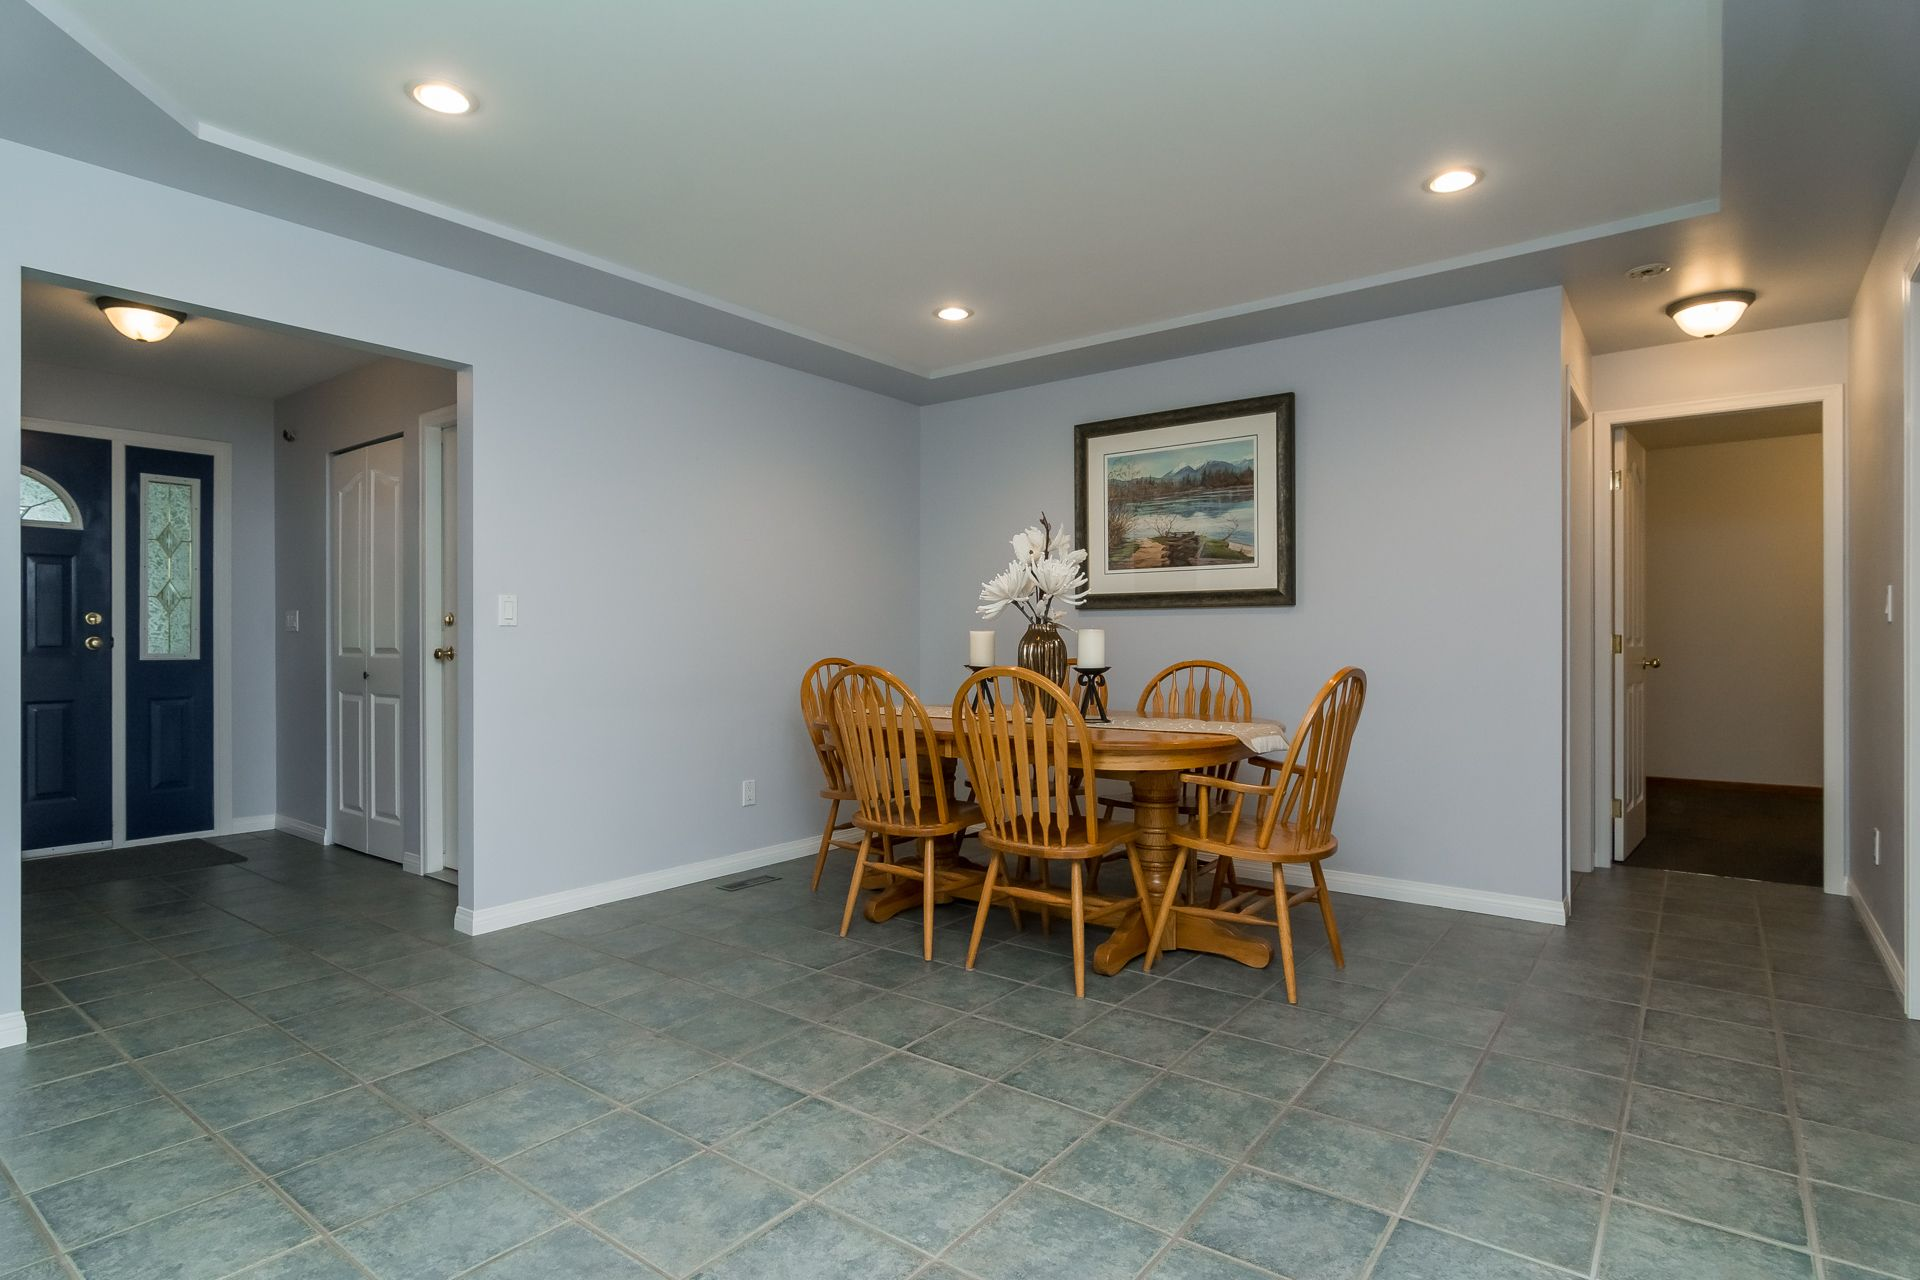 """Photo 19: Photos: 19941 37 Avenue in Langley: Brookswood Langley House for sale in """"Brookswood"""" : MLS®# R2240474"""